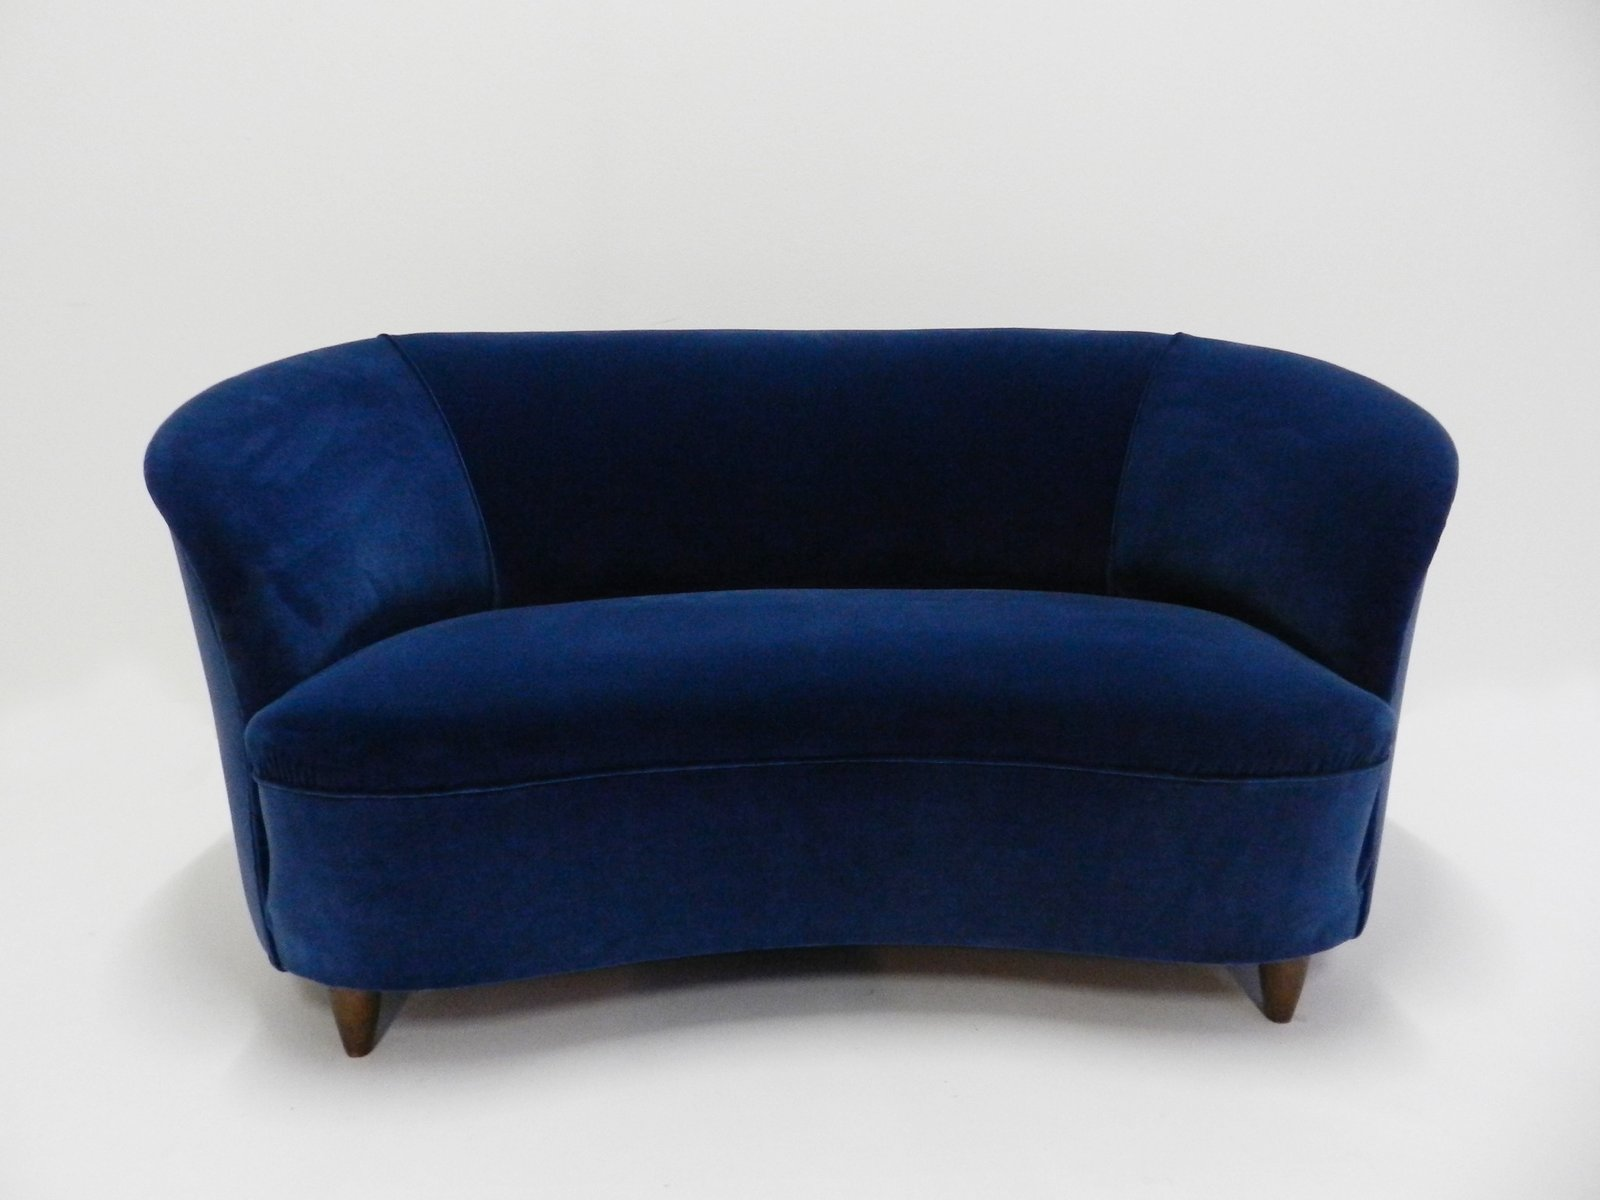 Canap deux places mid century arrondi en velours bleu for Canape 2 places arrondi